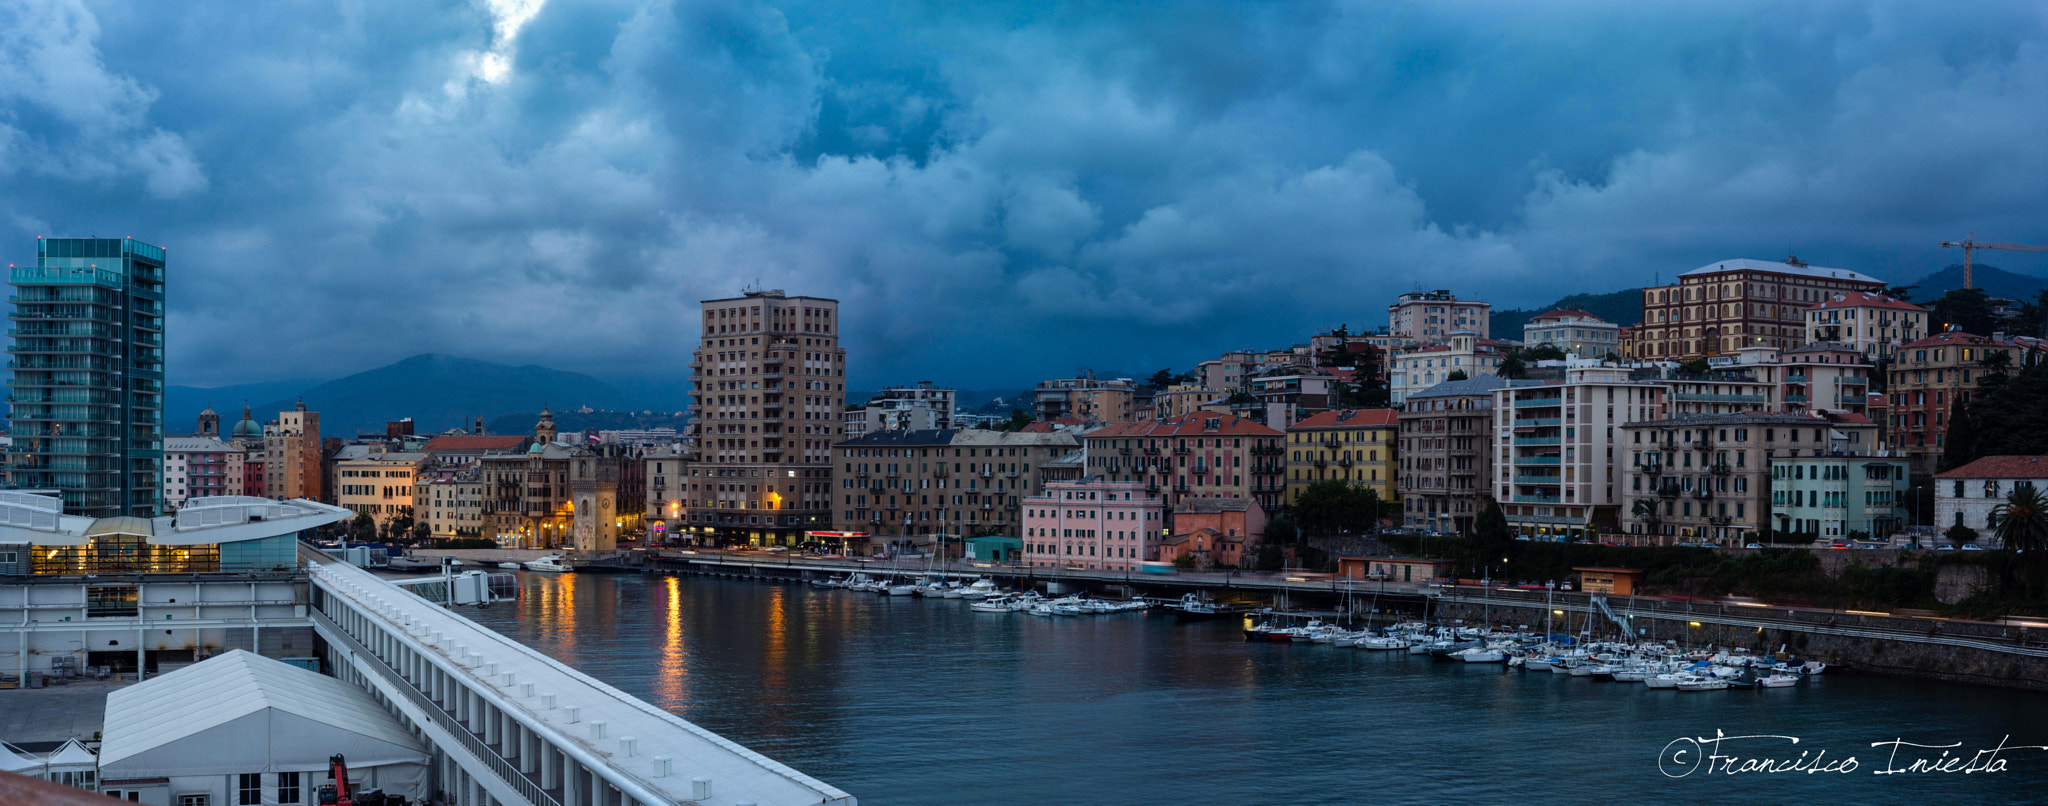 Photograph Puerto de Savona by Francisco Iniesta on 500px